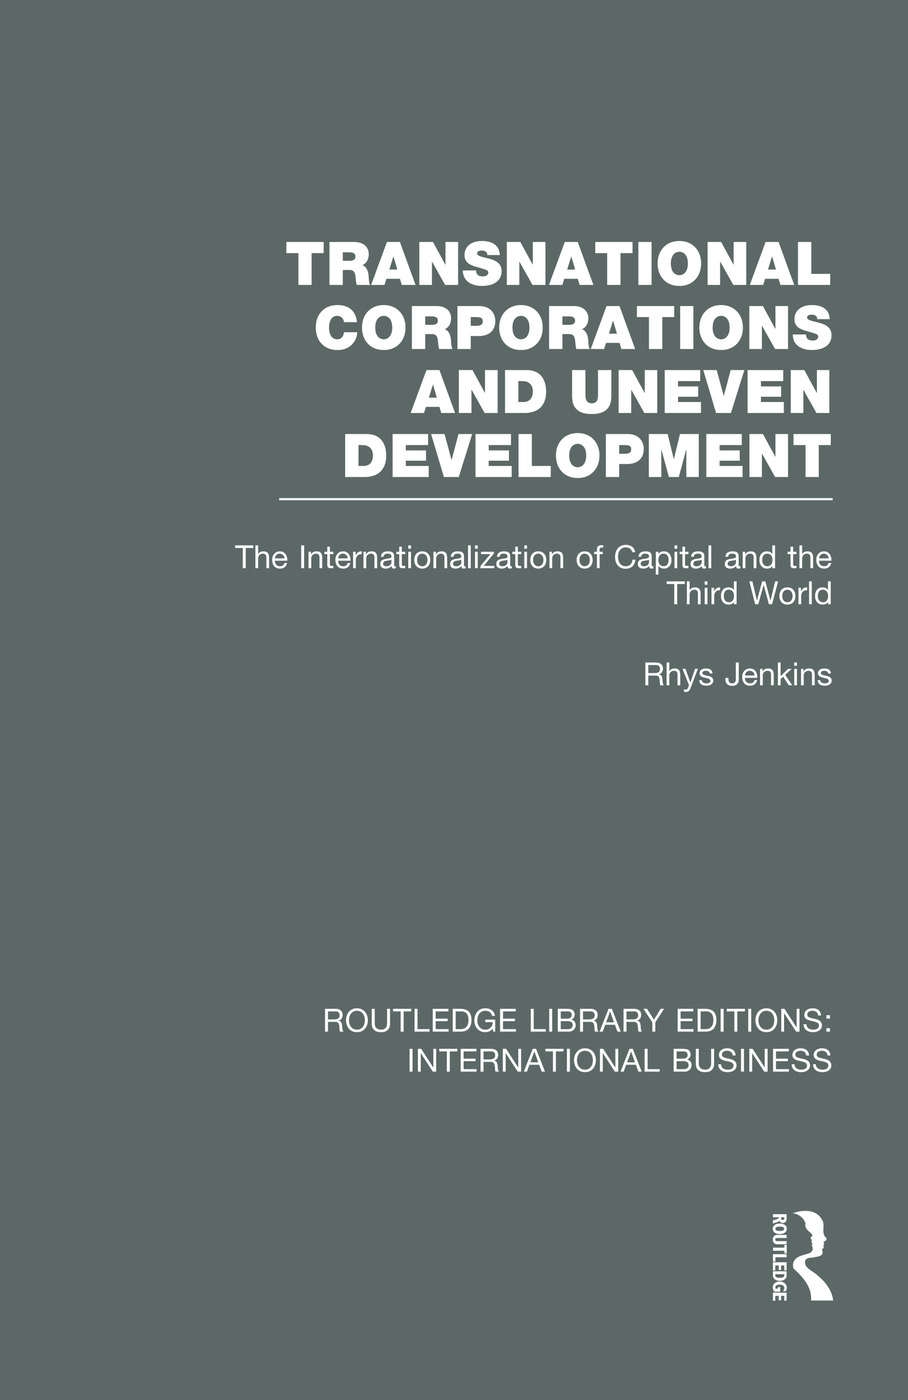 Transnational Corporations and Uneven Development (RLE International Business): The Internationalization of Capital and the Third World, 1st Edition (Paperback) book cover